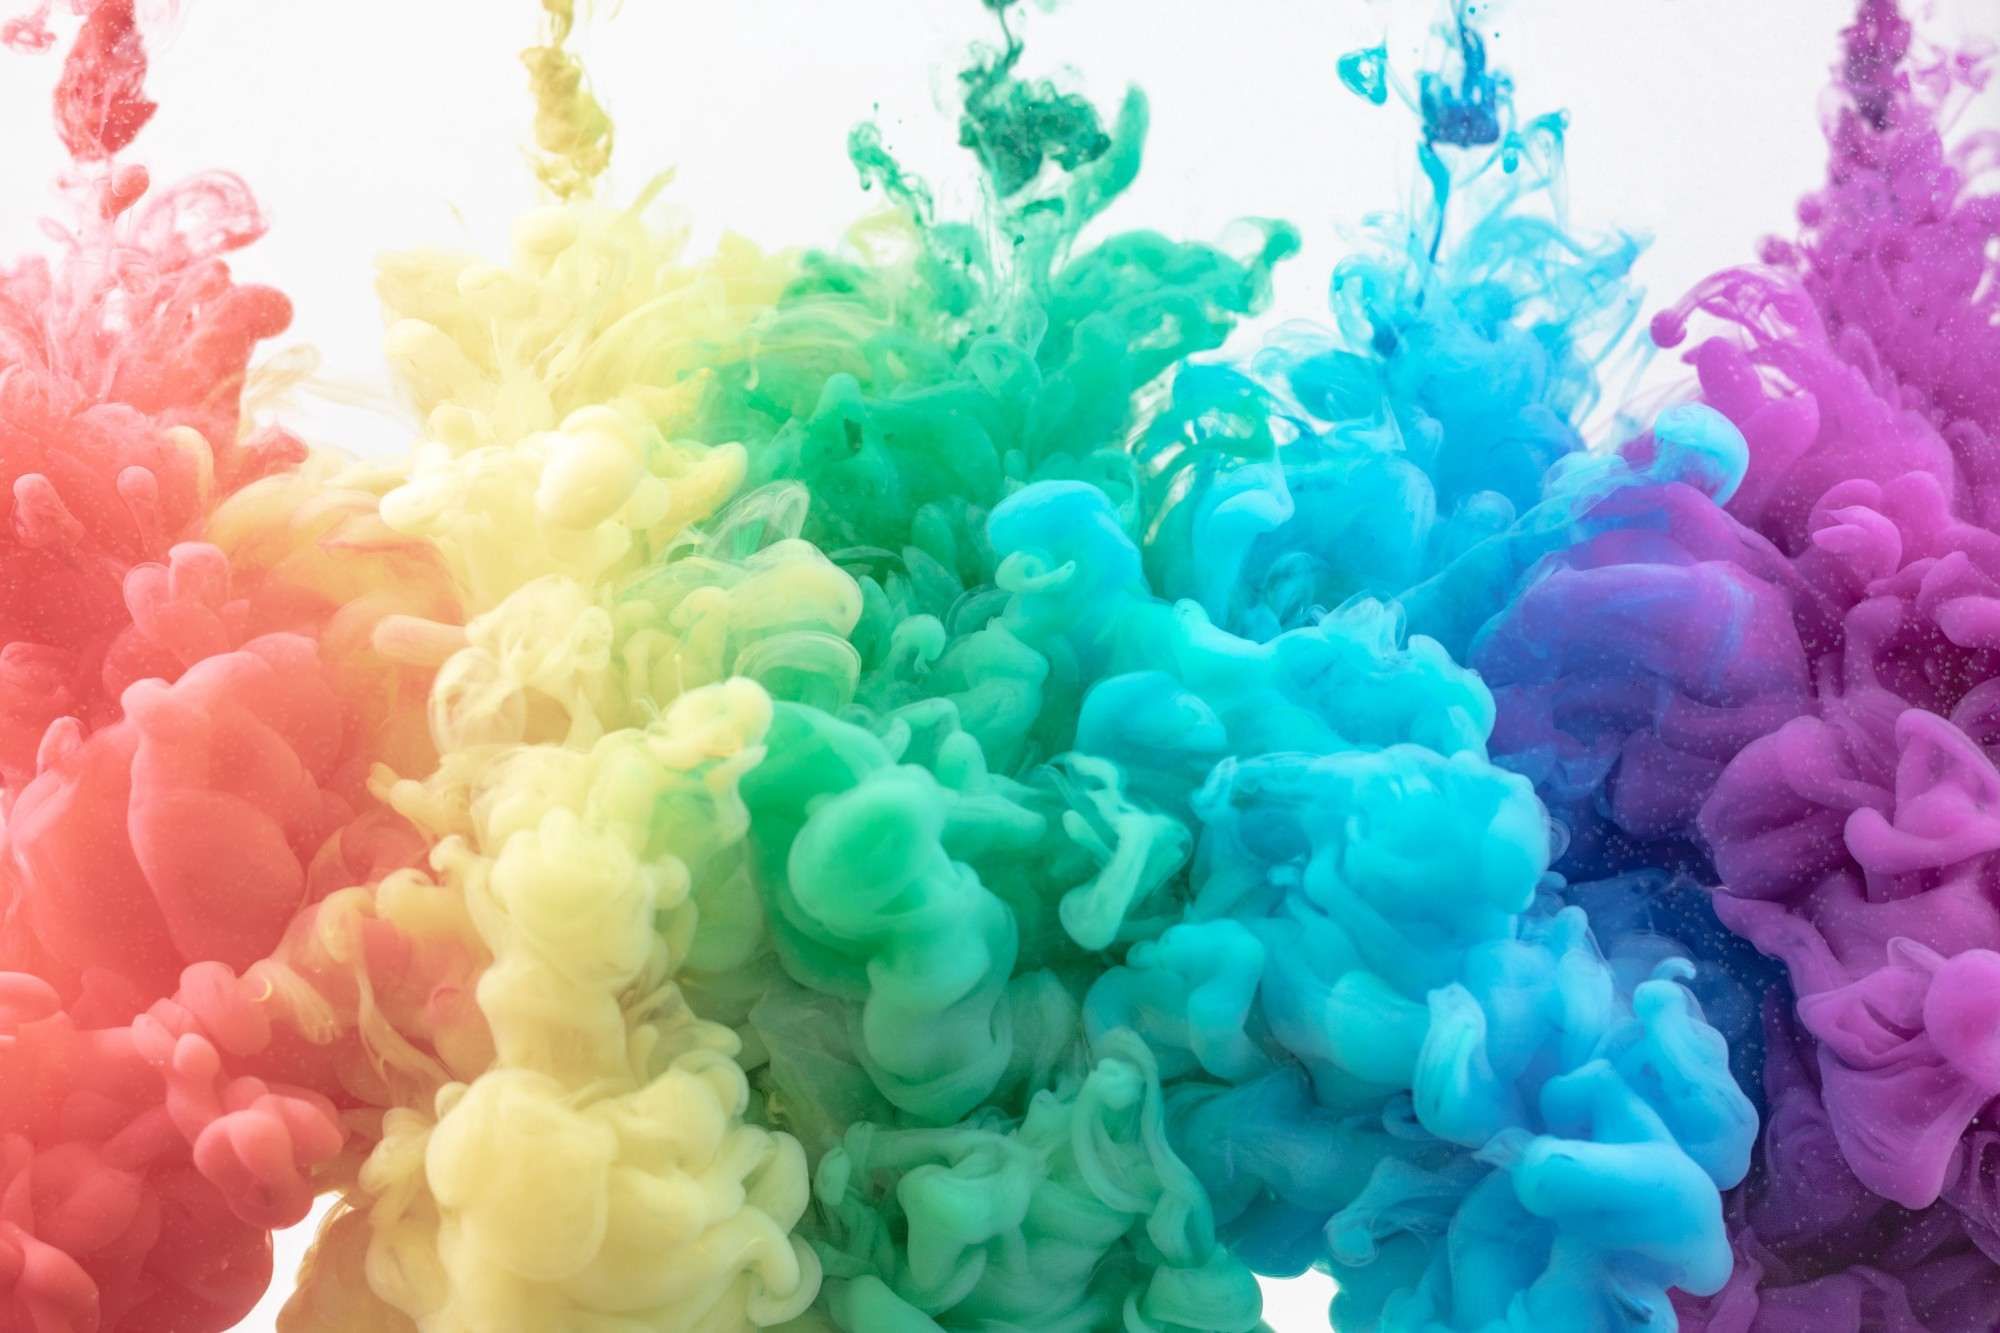 A splash of rainbow colors dissolving in water at the same time